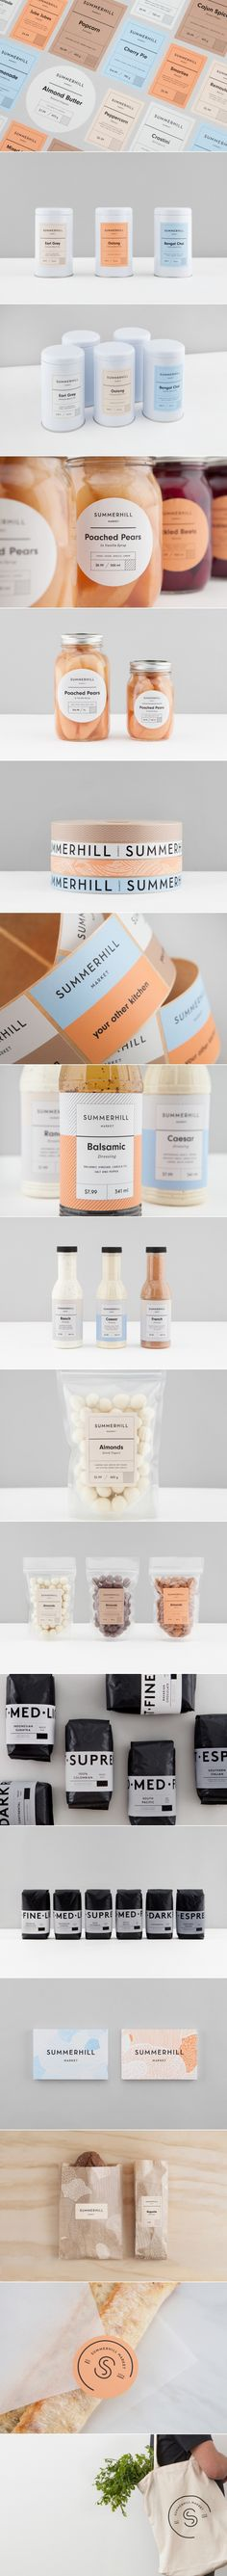 Summerhill Markets Fresh Contemporary Branding The Dieline Packaging Branding Design Innovation News Web Design, Design Food, Logo Design, Label Design, Identity Design, Typography Design, Layout Design, Lettering, Package Design